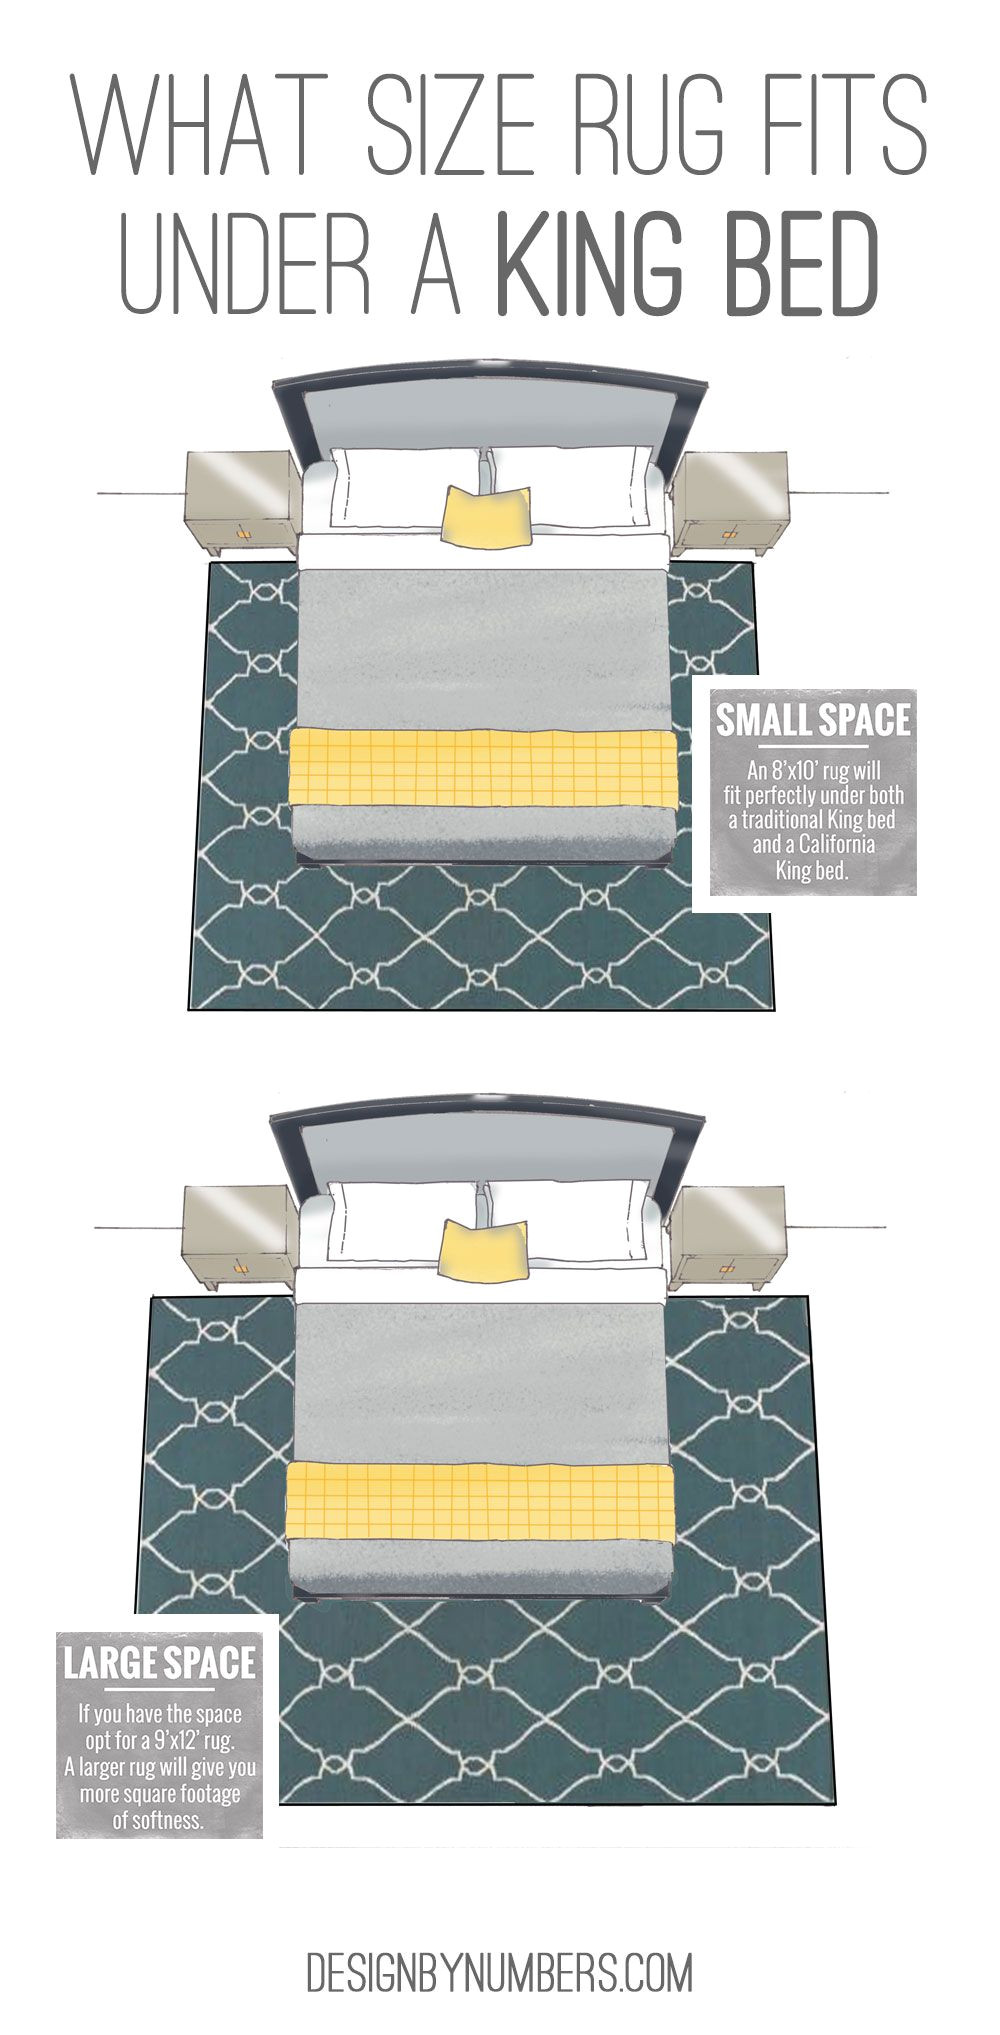 Placement Of 8×10 Rug Under Queen Bed What Size Rug Fits Under A King Bed Design by Numbers Living